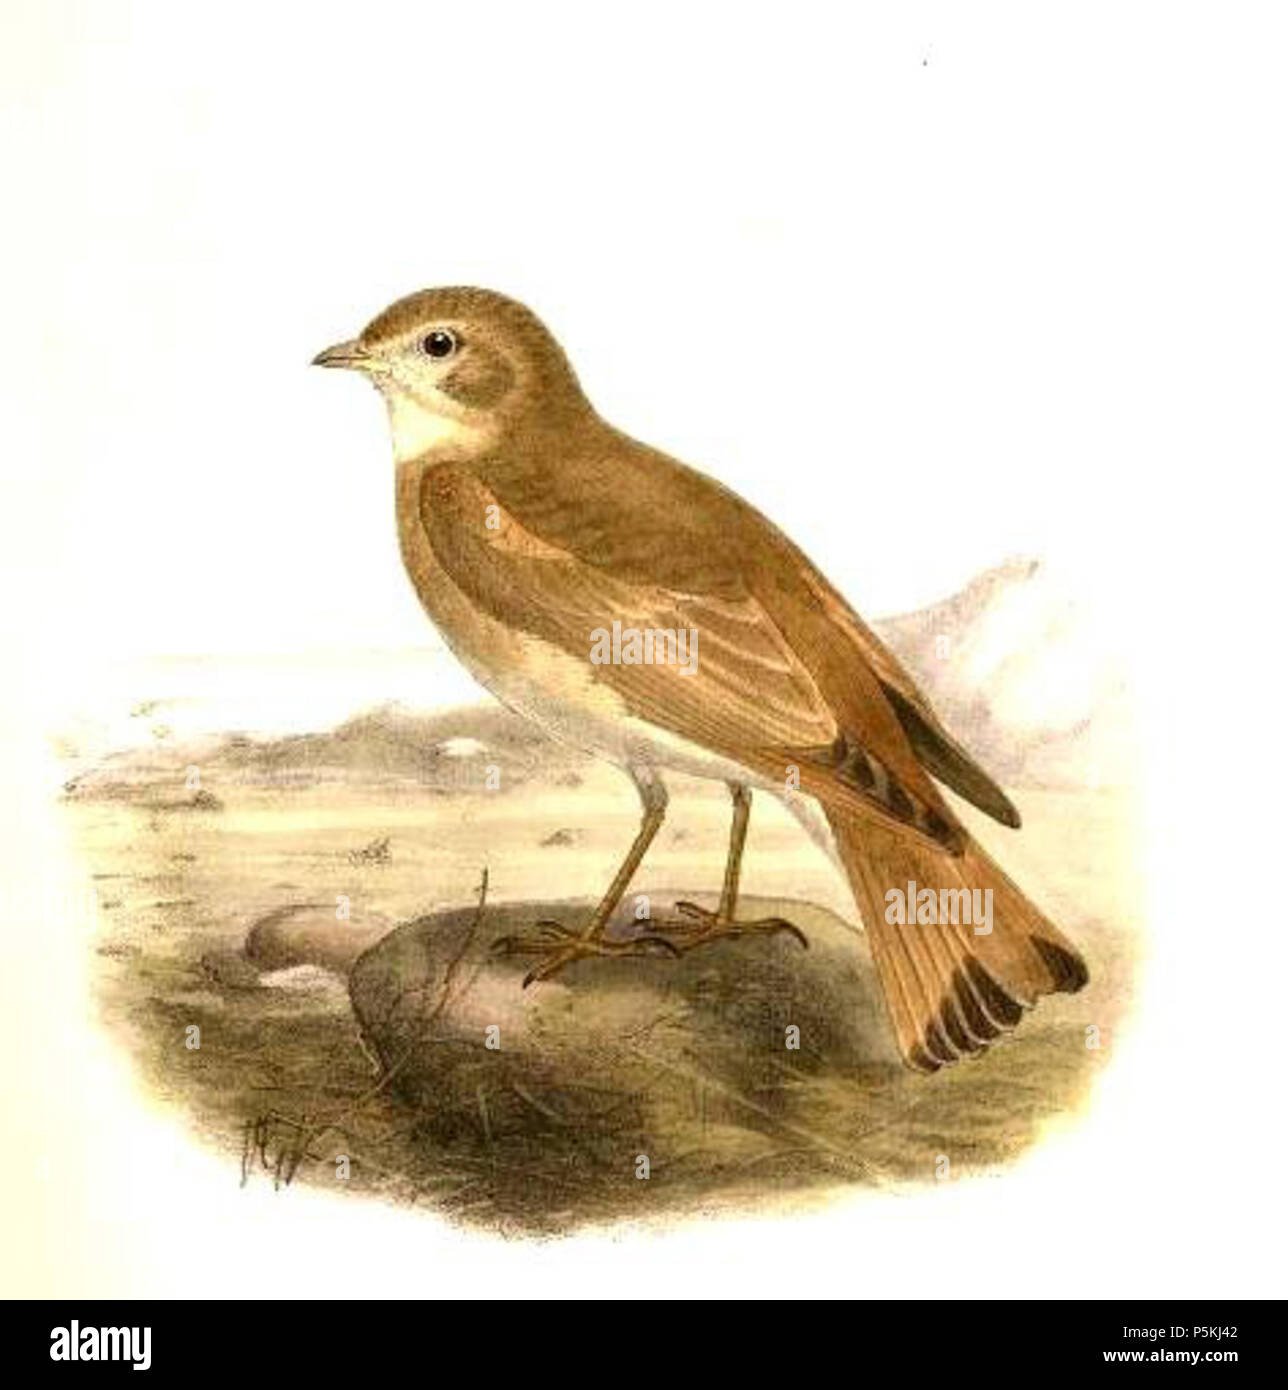 N/A. English: Ammomanes cinctura (Bar-tailed Lark) Français : Ammomanes cinctura (Ammomane élégante) .   John Gould  (1804–1881)      Alternative names Gould  Description British zoologist  Date of birth/death 14 September 1804 2 March 1881  Location of birth/death Lyme Regis London  Authority control  : Q313787 VIAF:29597222 ISNI:0000 0001 2125 9888 ULAN:500006638 LCCN:n79100355 NLA:35137514 WorldCat 94 Ammomanes cinctura Gould - Stock Image